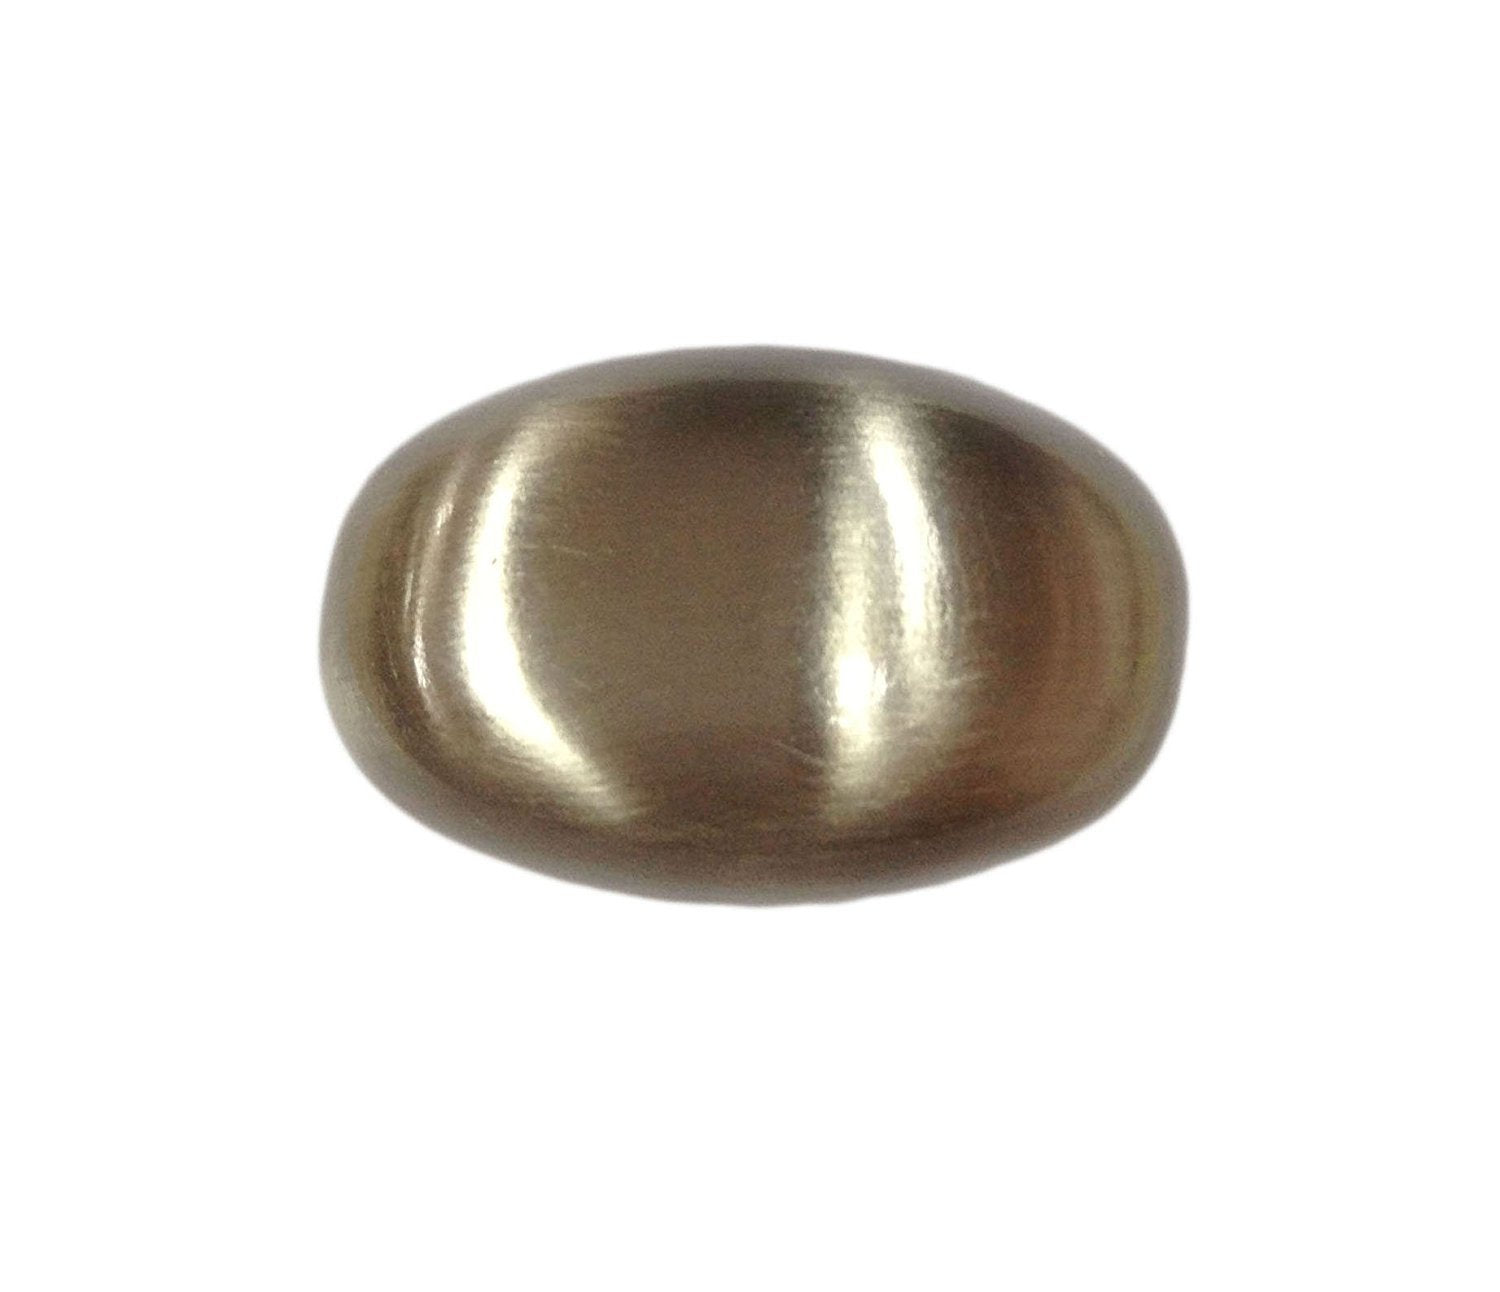 Sutton Oval Cabinet Hardware Knob - 4 Finishes